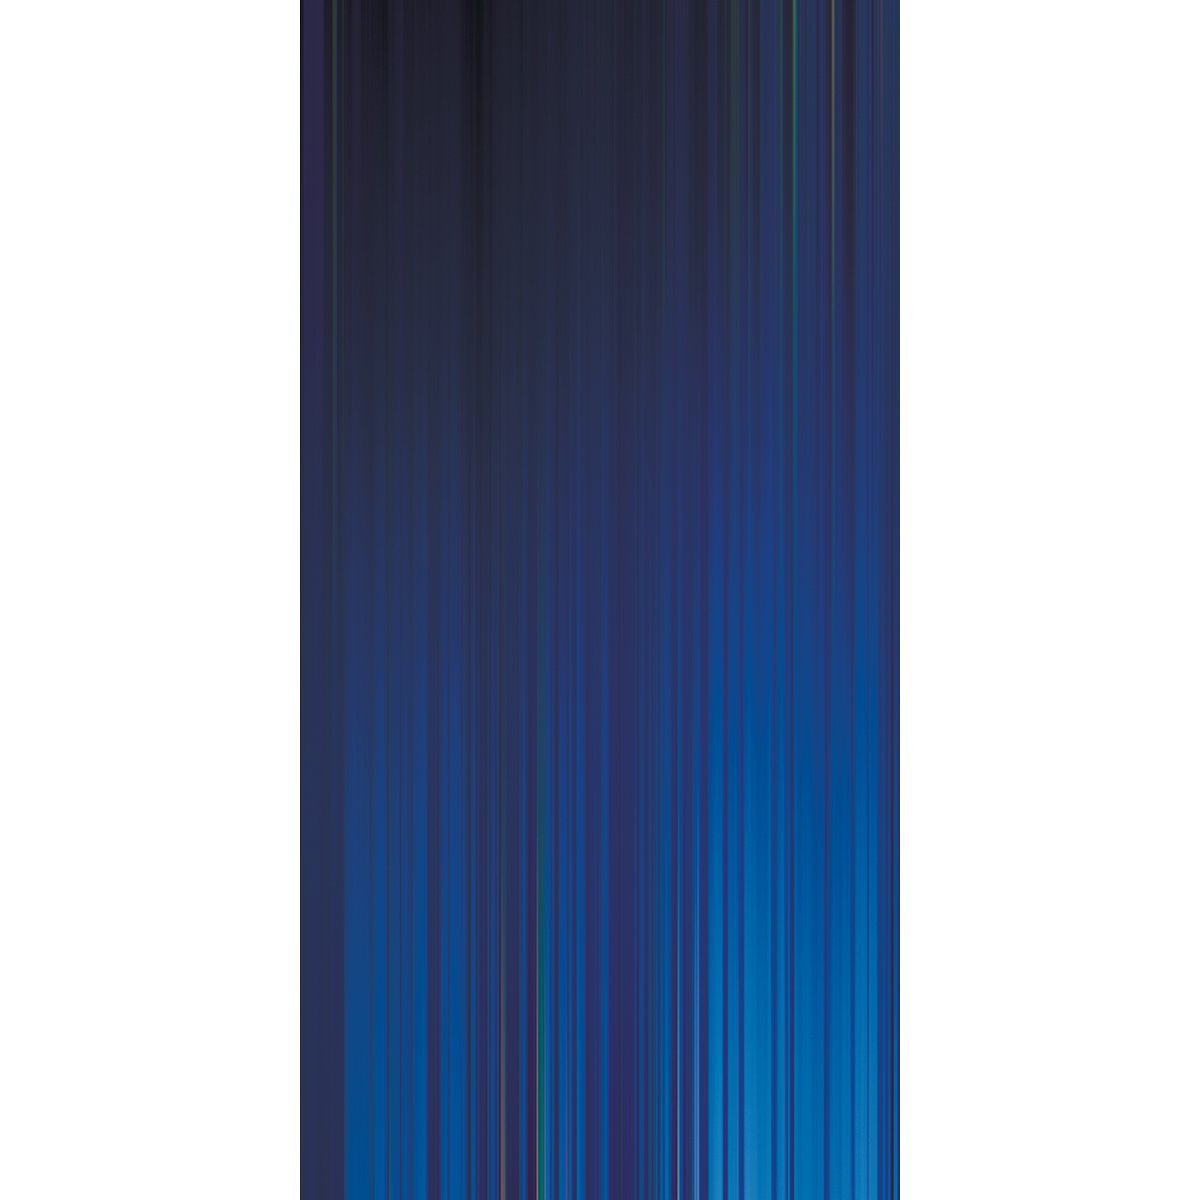 Wall Acoustics Panel 1 Muffle Abstract Mural - Kinetic Blue Panel 1